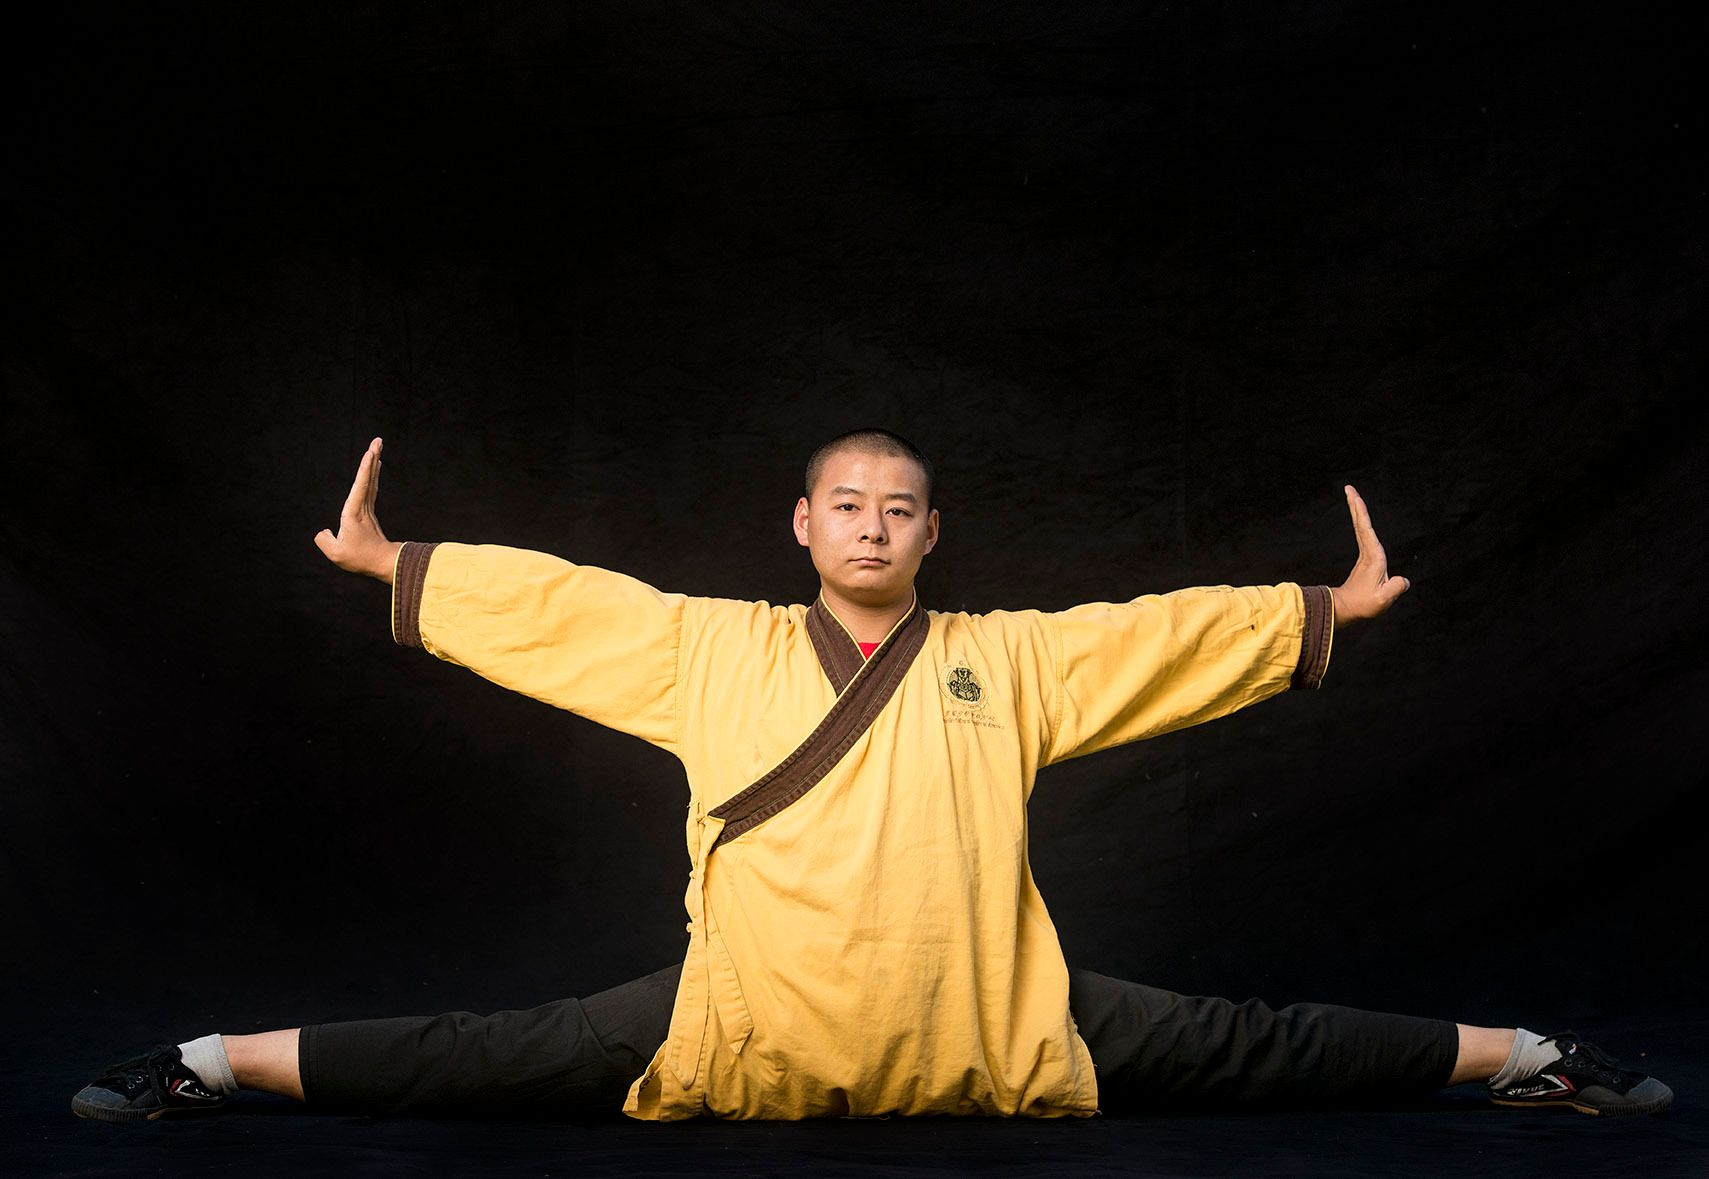 103302015_shaolin_monks0616